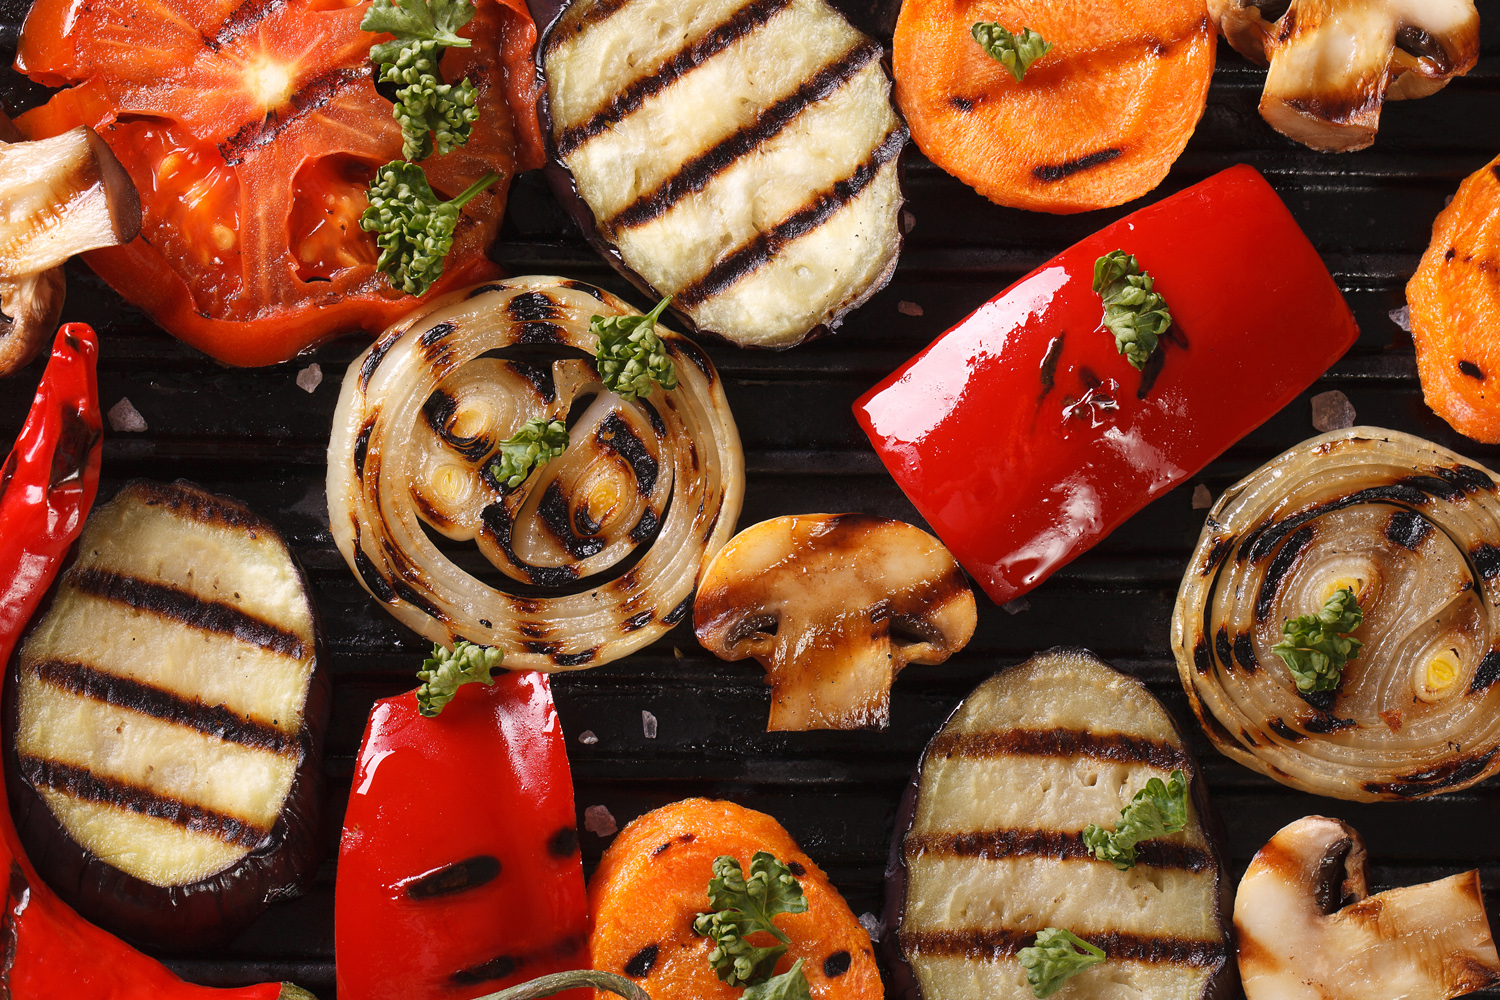 Have a Healthy BBQ! Don't Skip Out on the Veggies.